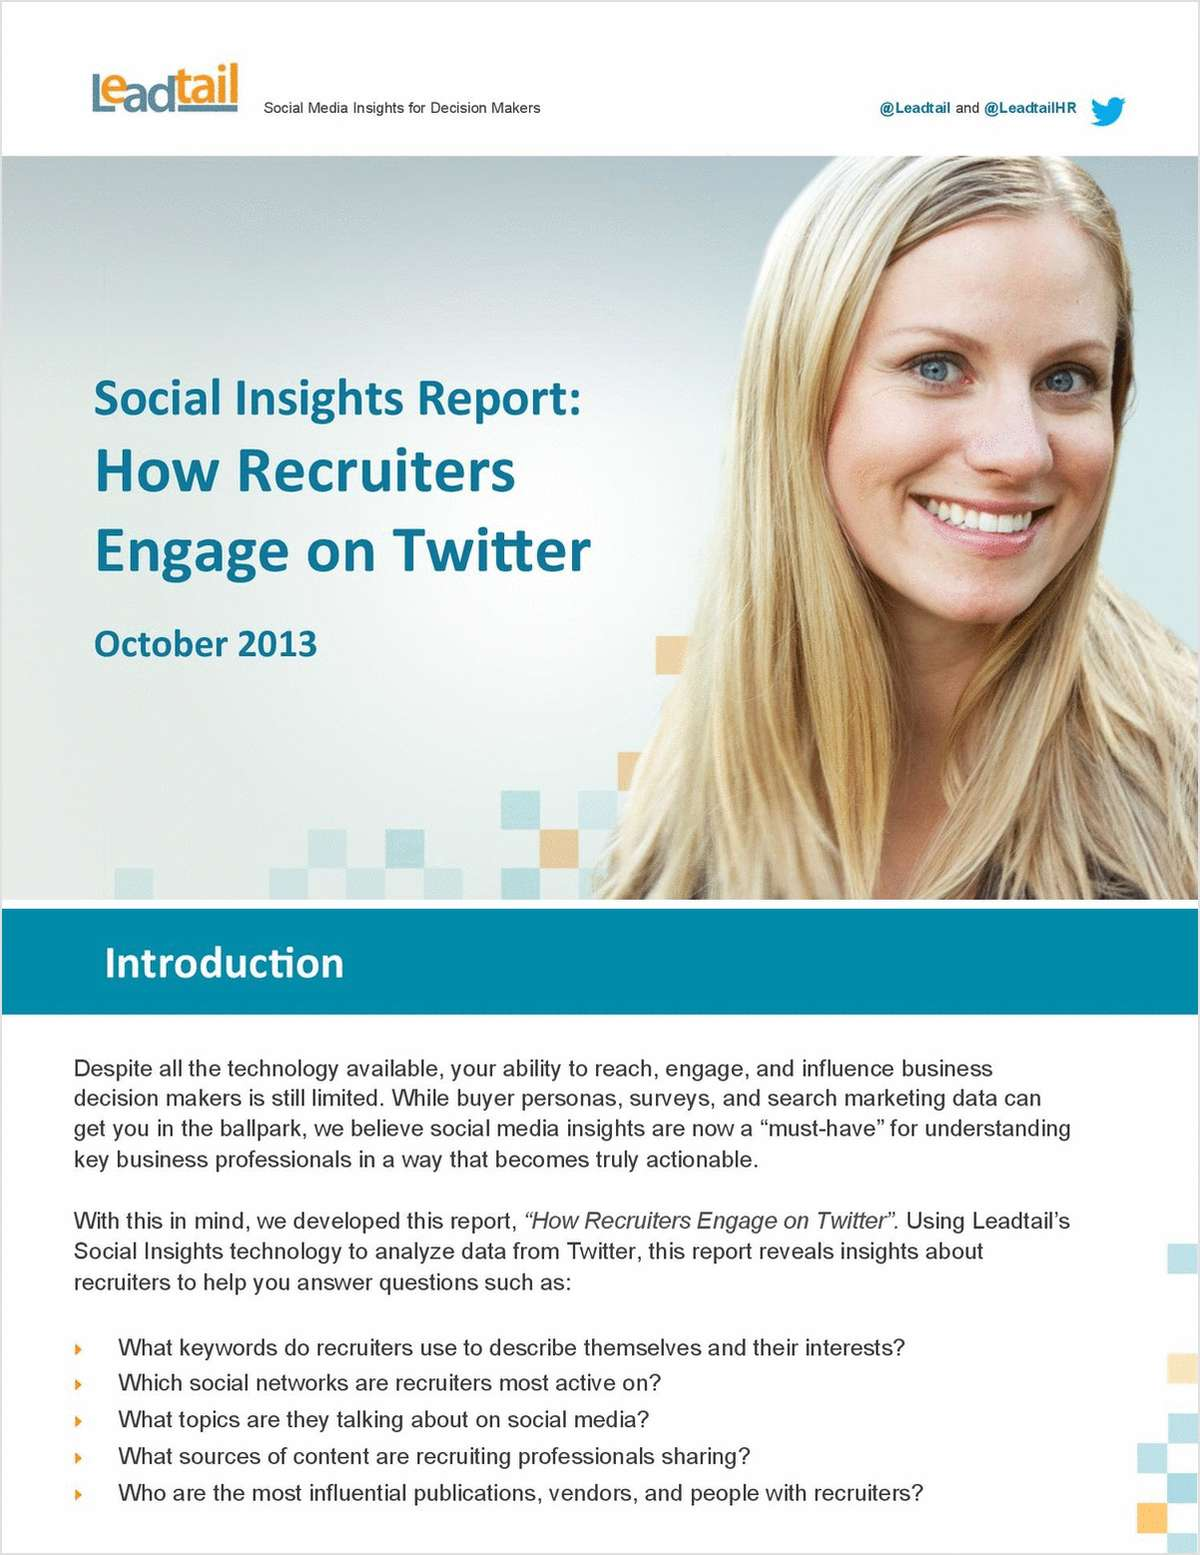 Social Insights Report: How Recruiters Engage on Twitter